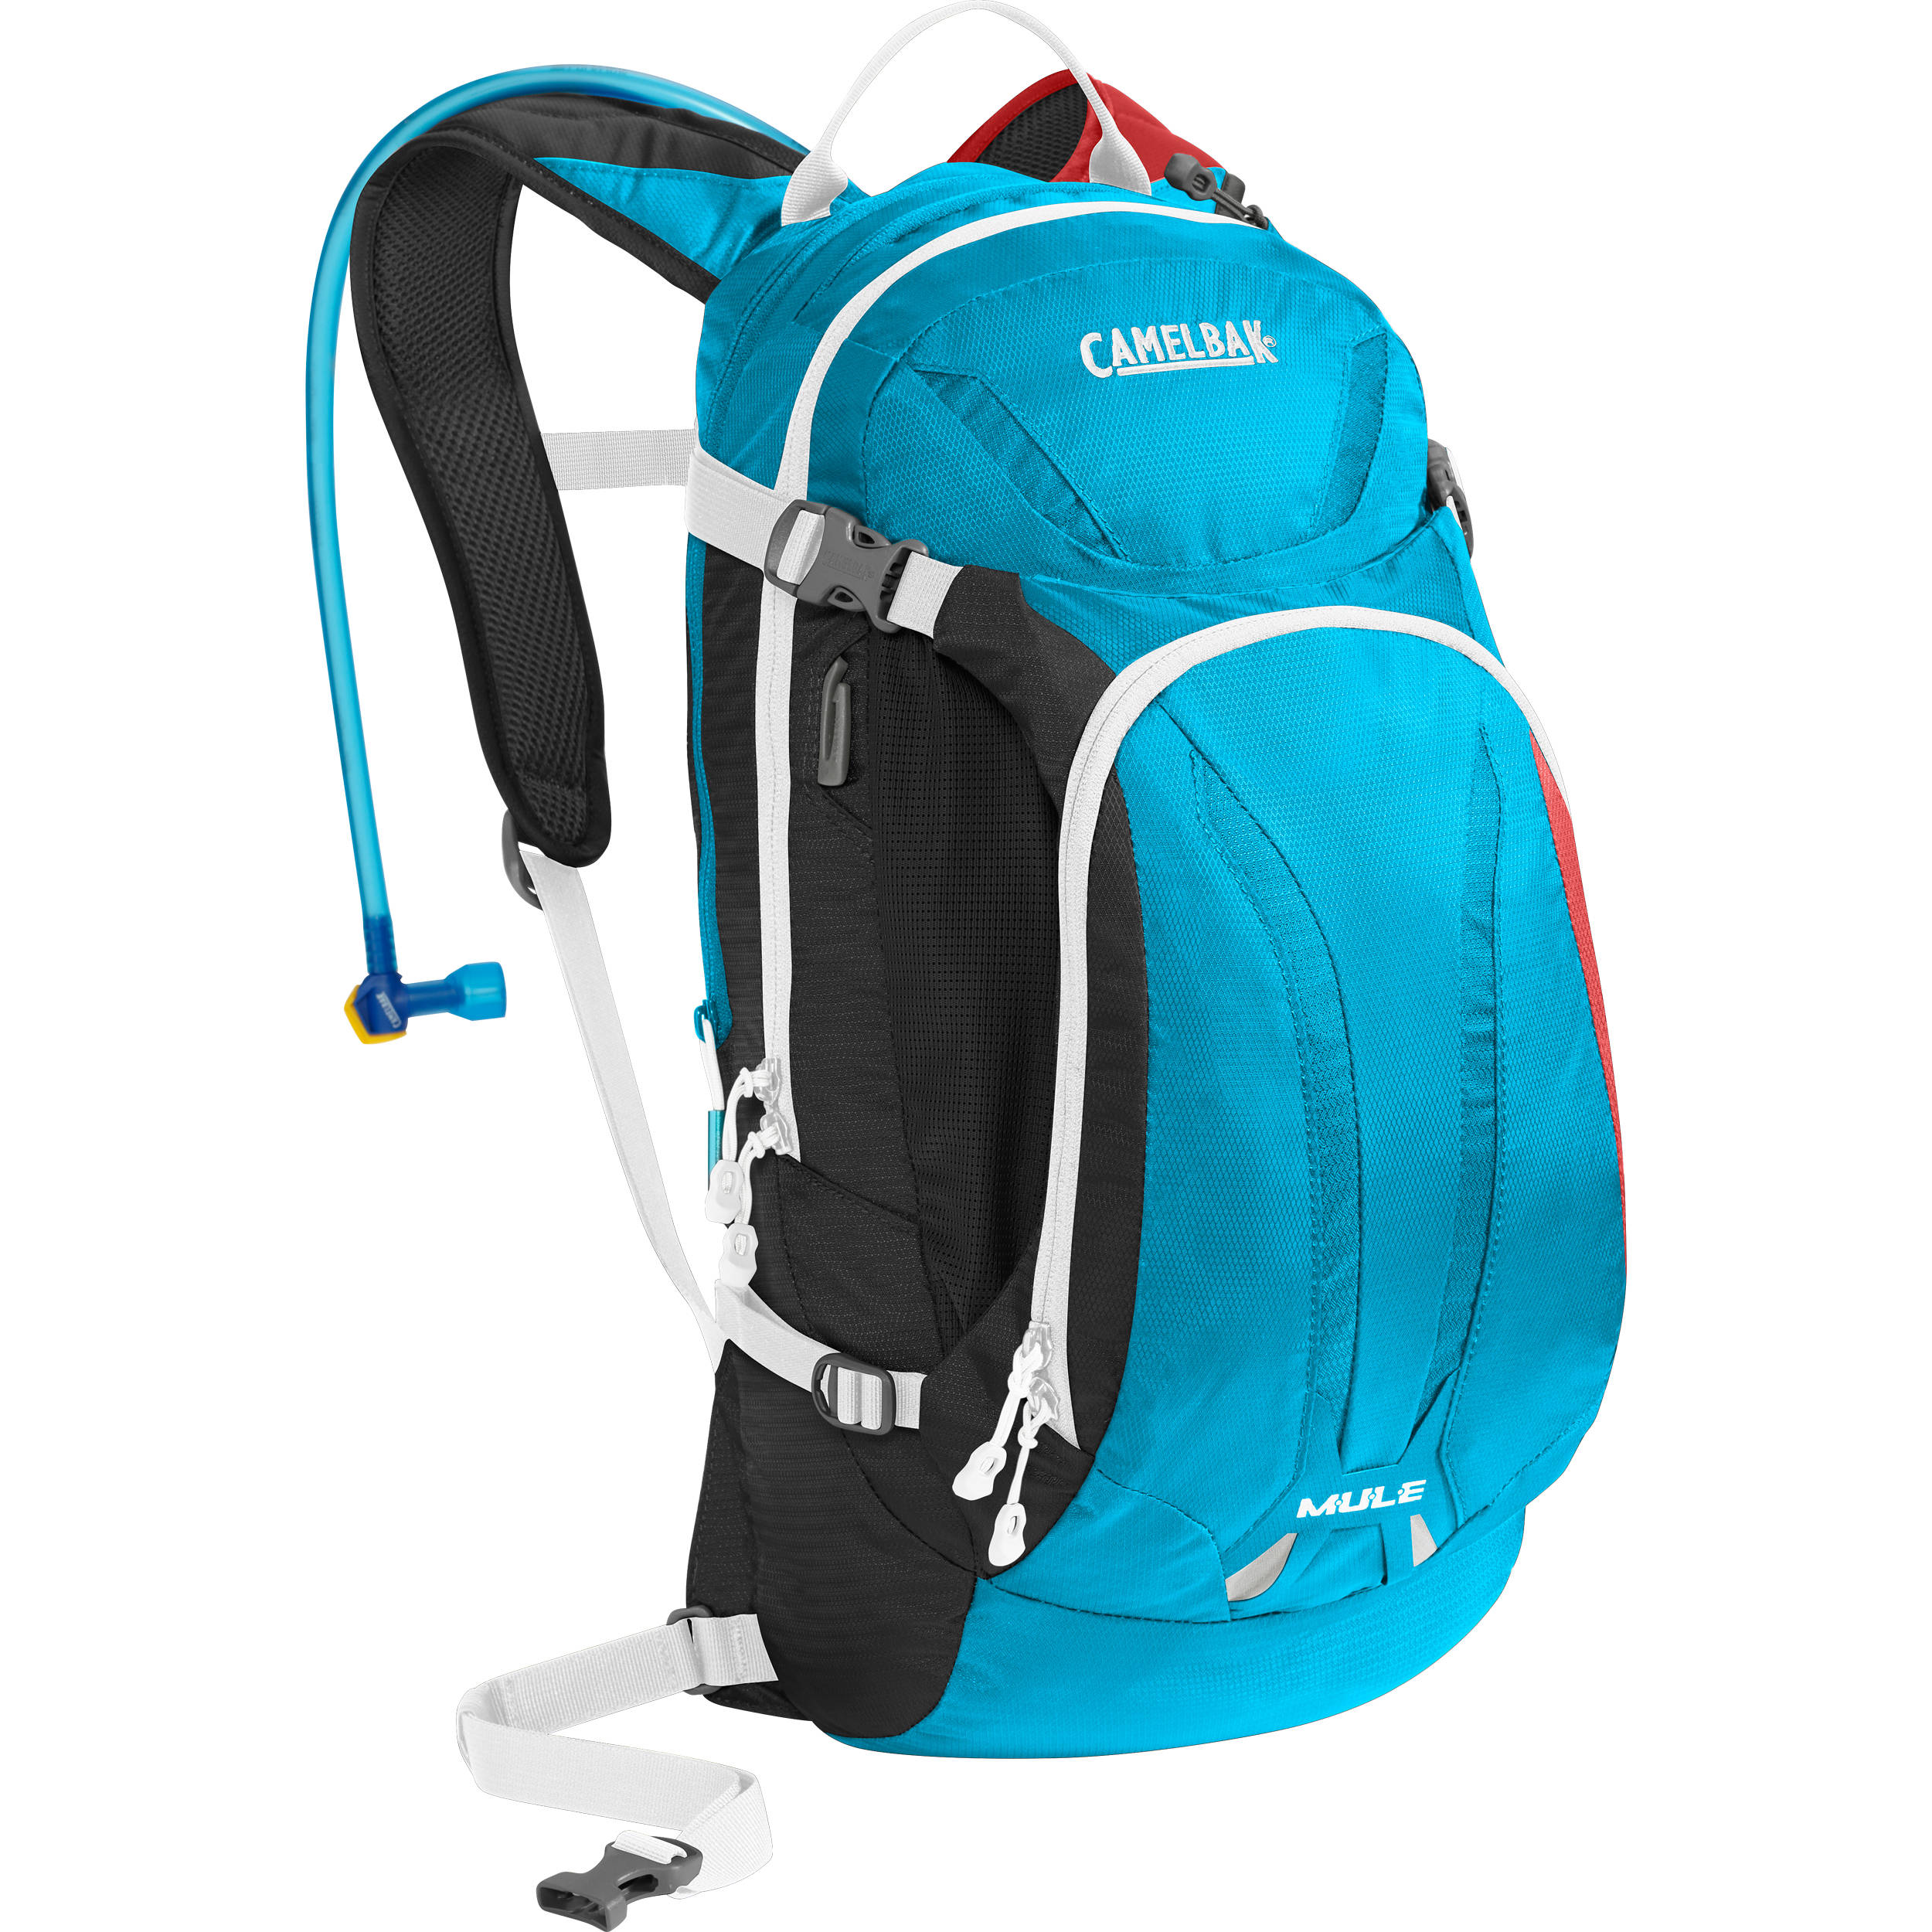 b070be18e16 CAMELBAK M.U.L.E. 9L Hydration Bike Pack with 3L Reservoir  (Charcoal/Atomic/Barbados)